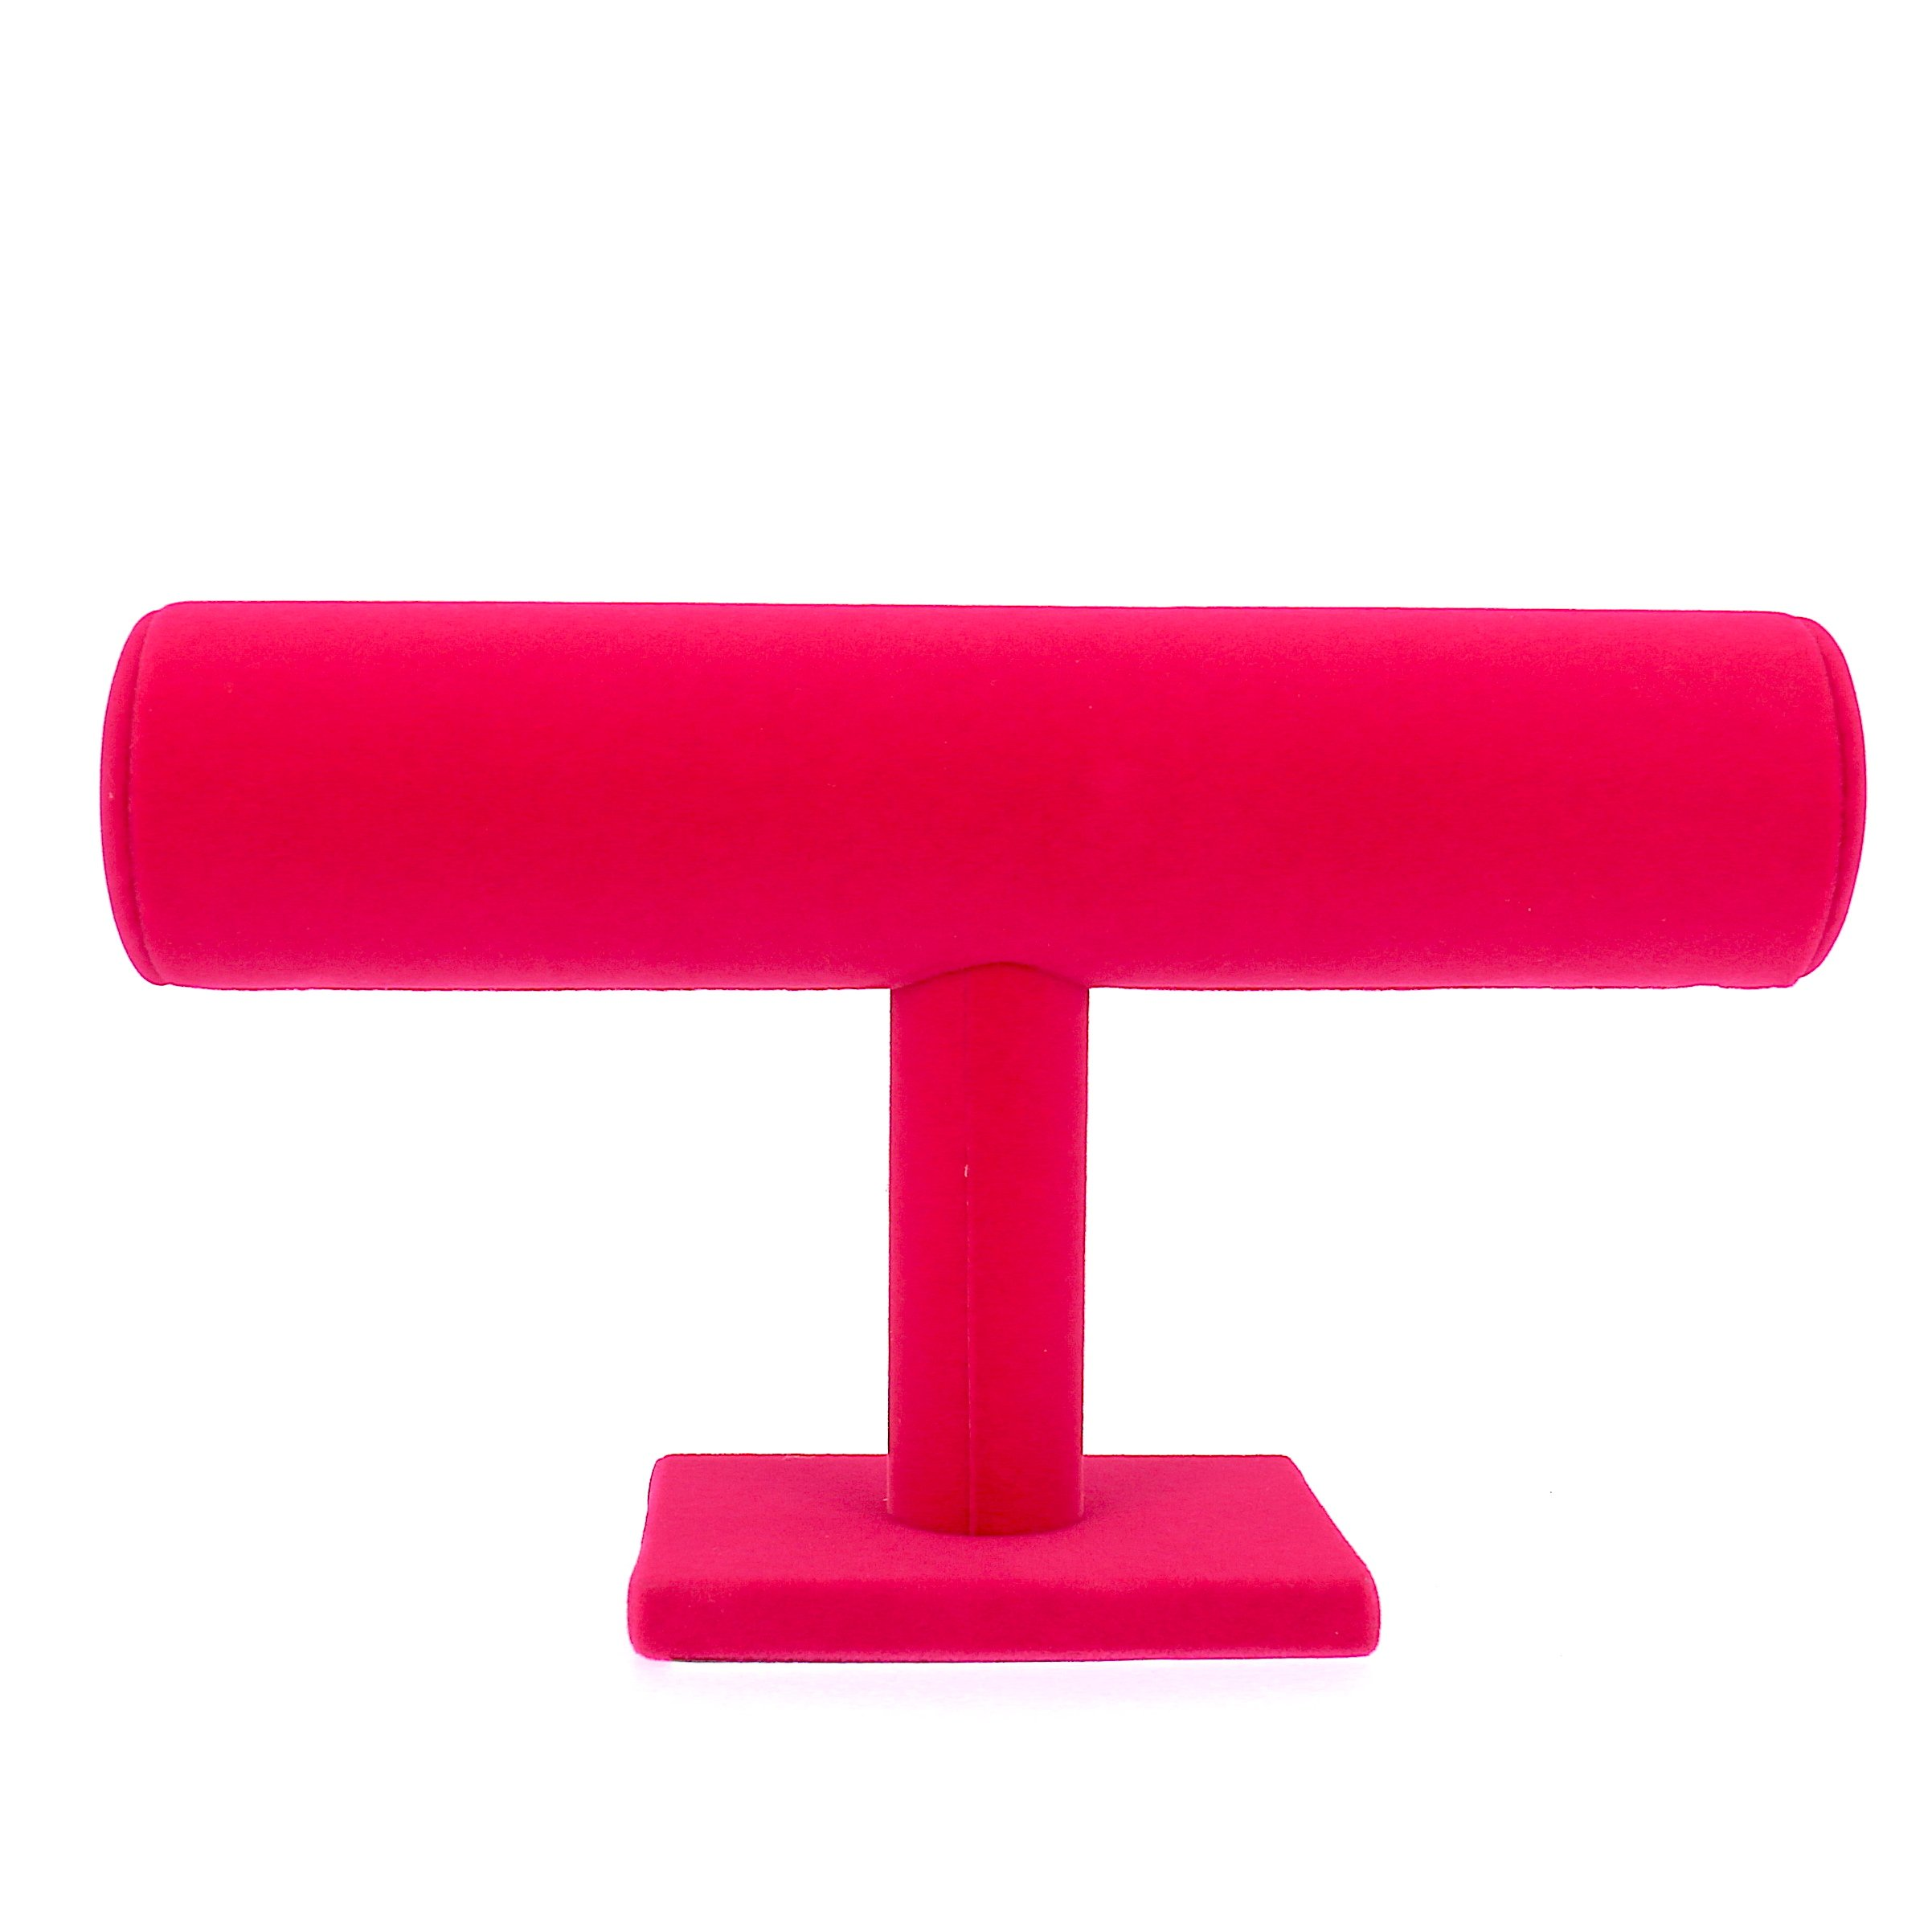 Pink Velvet T-Bar Jewelry Display Stand Hovering Bracelet Necklace Stoarge for Home Organization (1 Row)